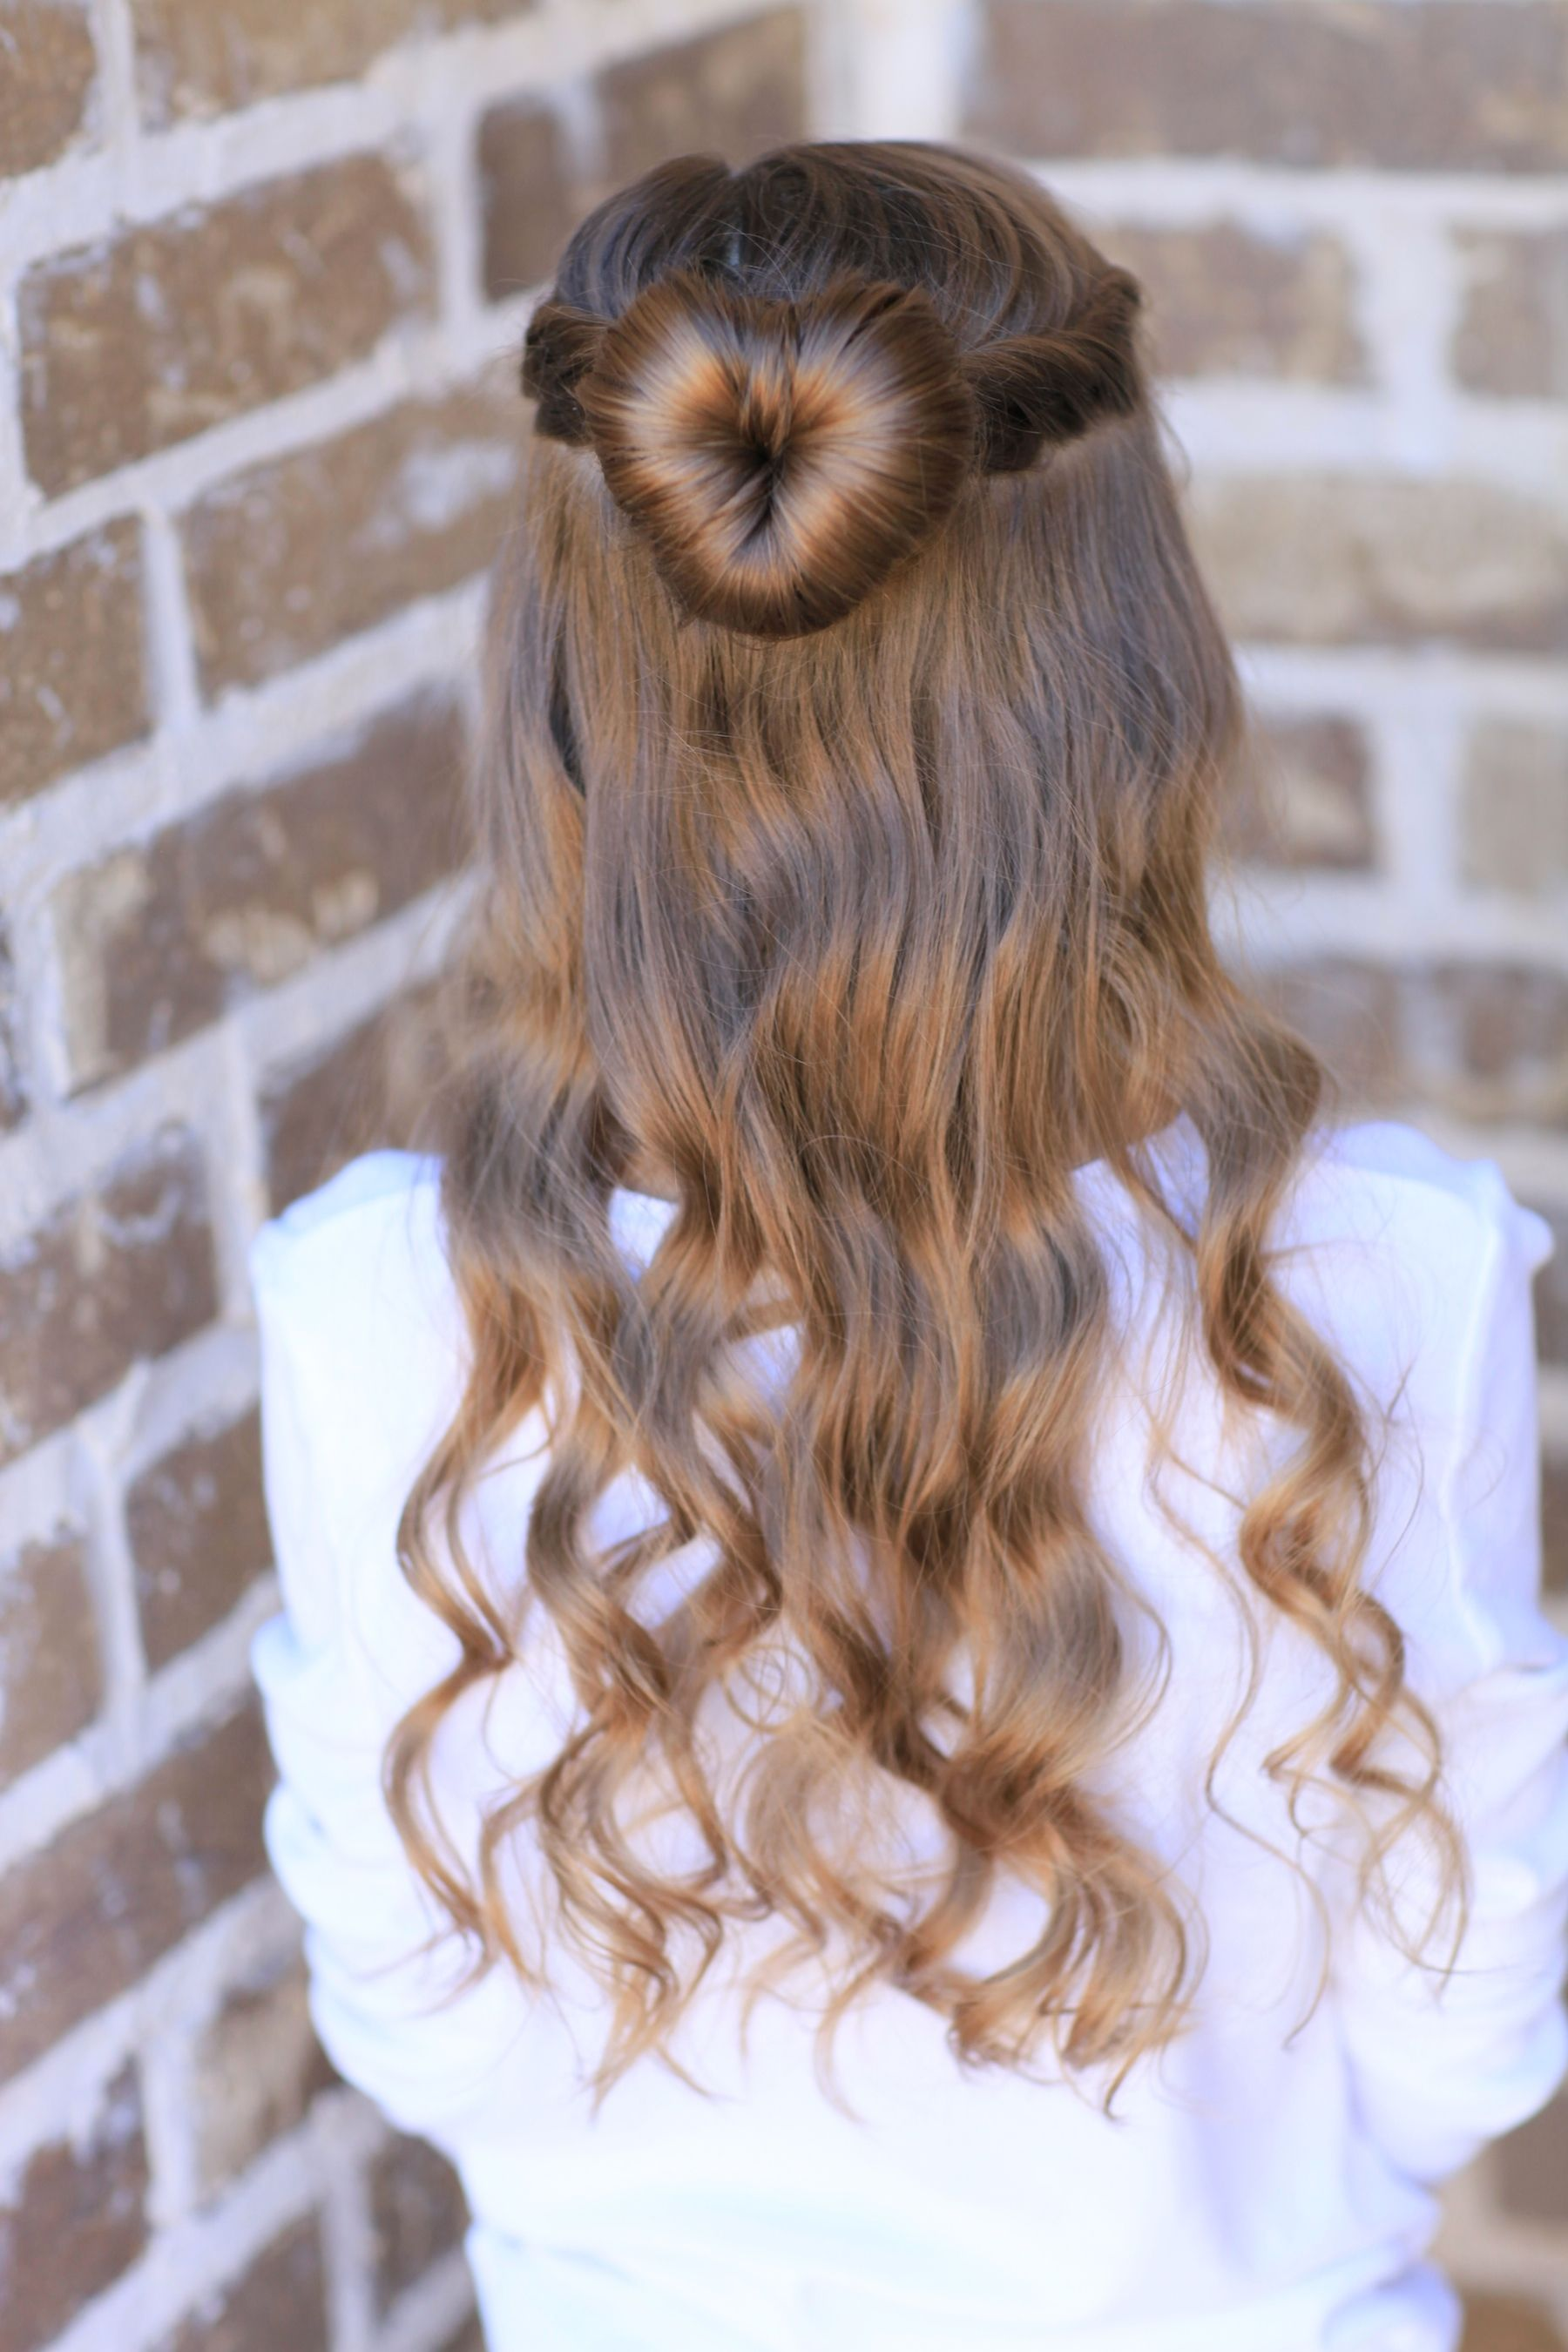 hairstyles for picture day at middle school 2016 | kids hair